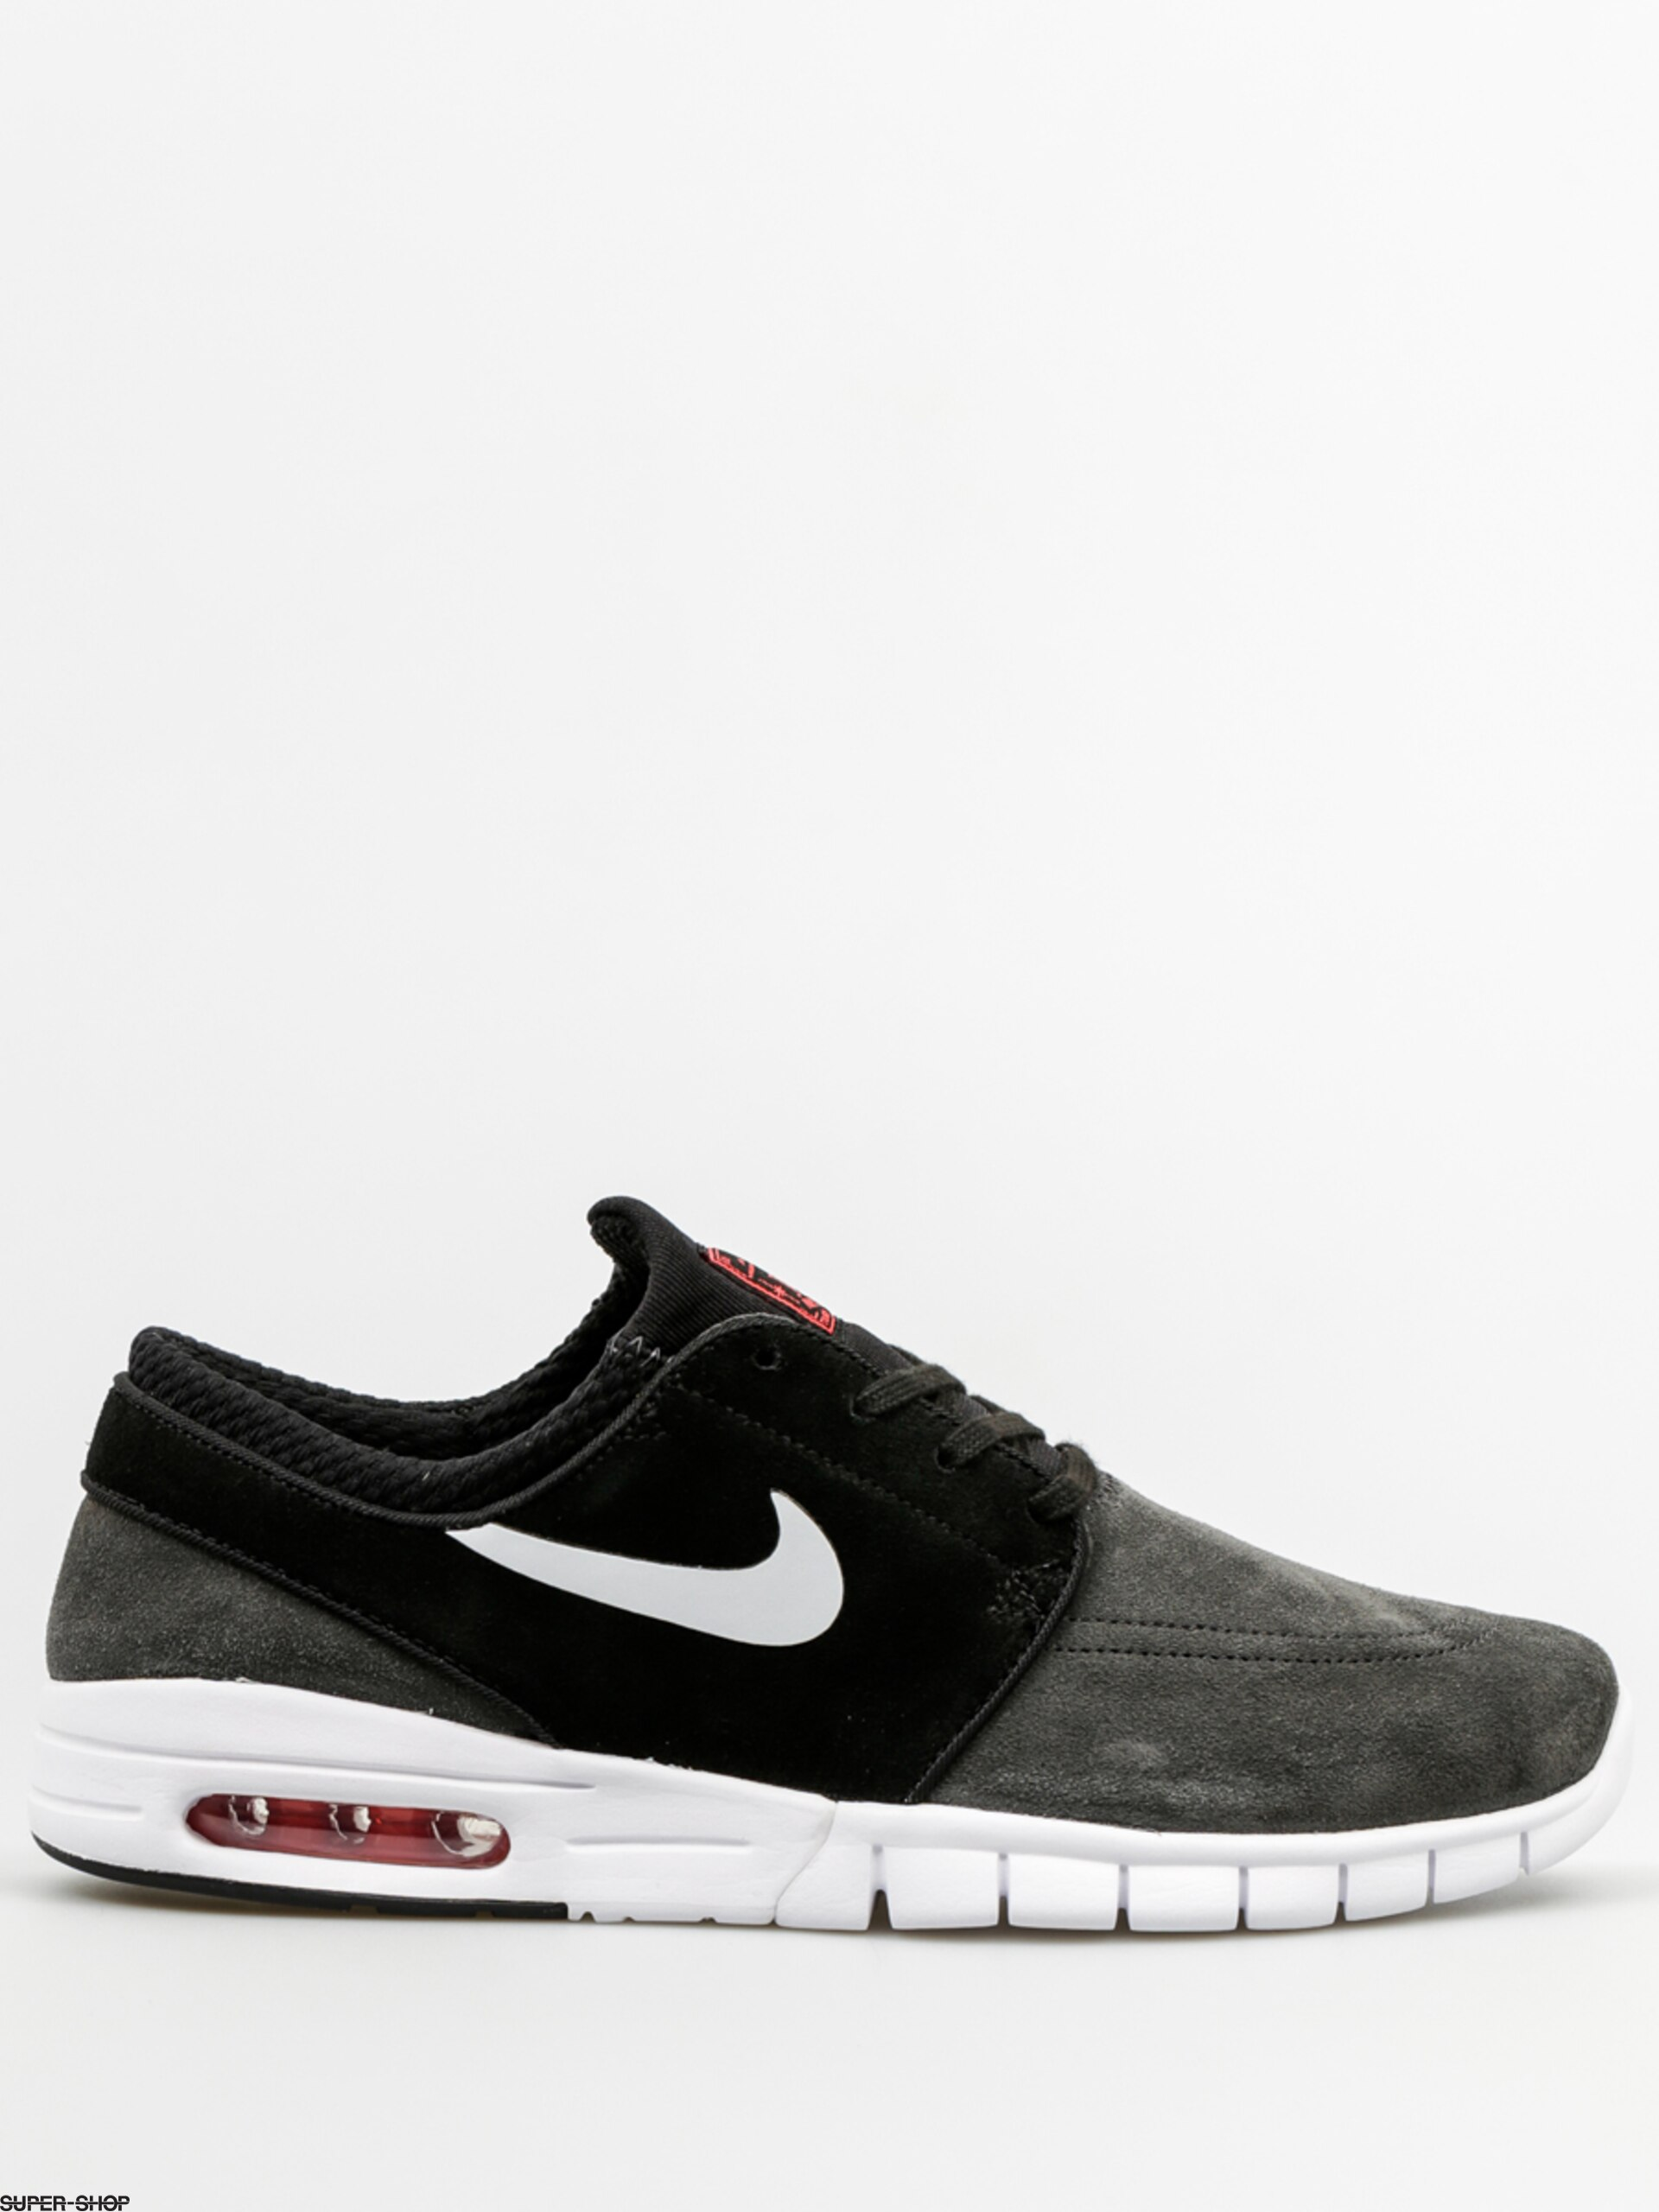 reputable site 517c8 d8c1b Nike SB Shoes Stefan Janoski Max L (anthracite pure platinum black)